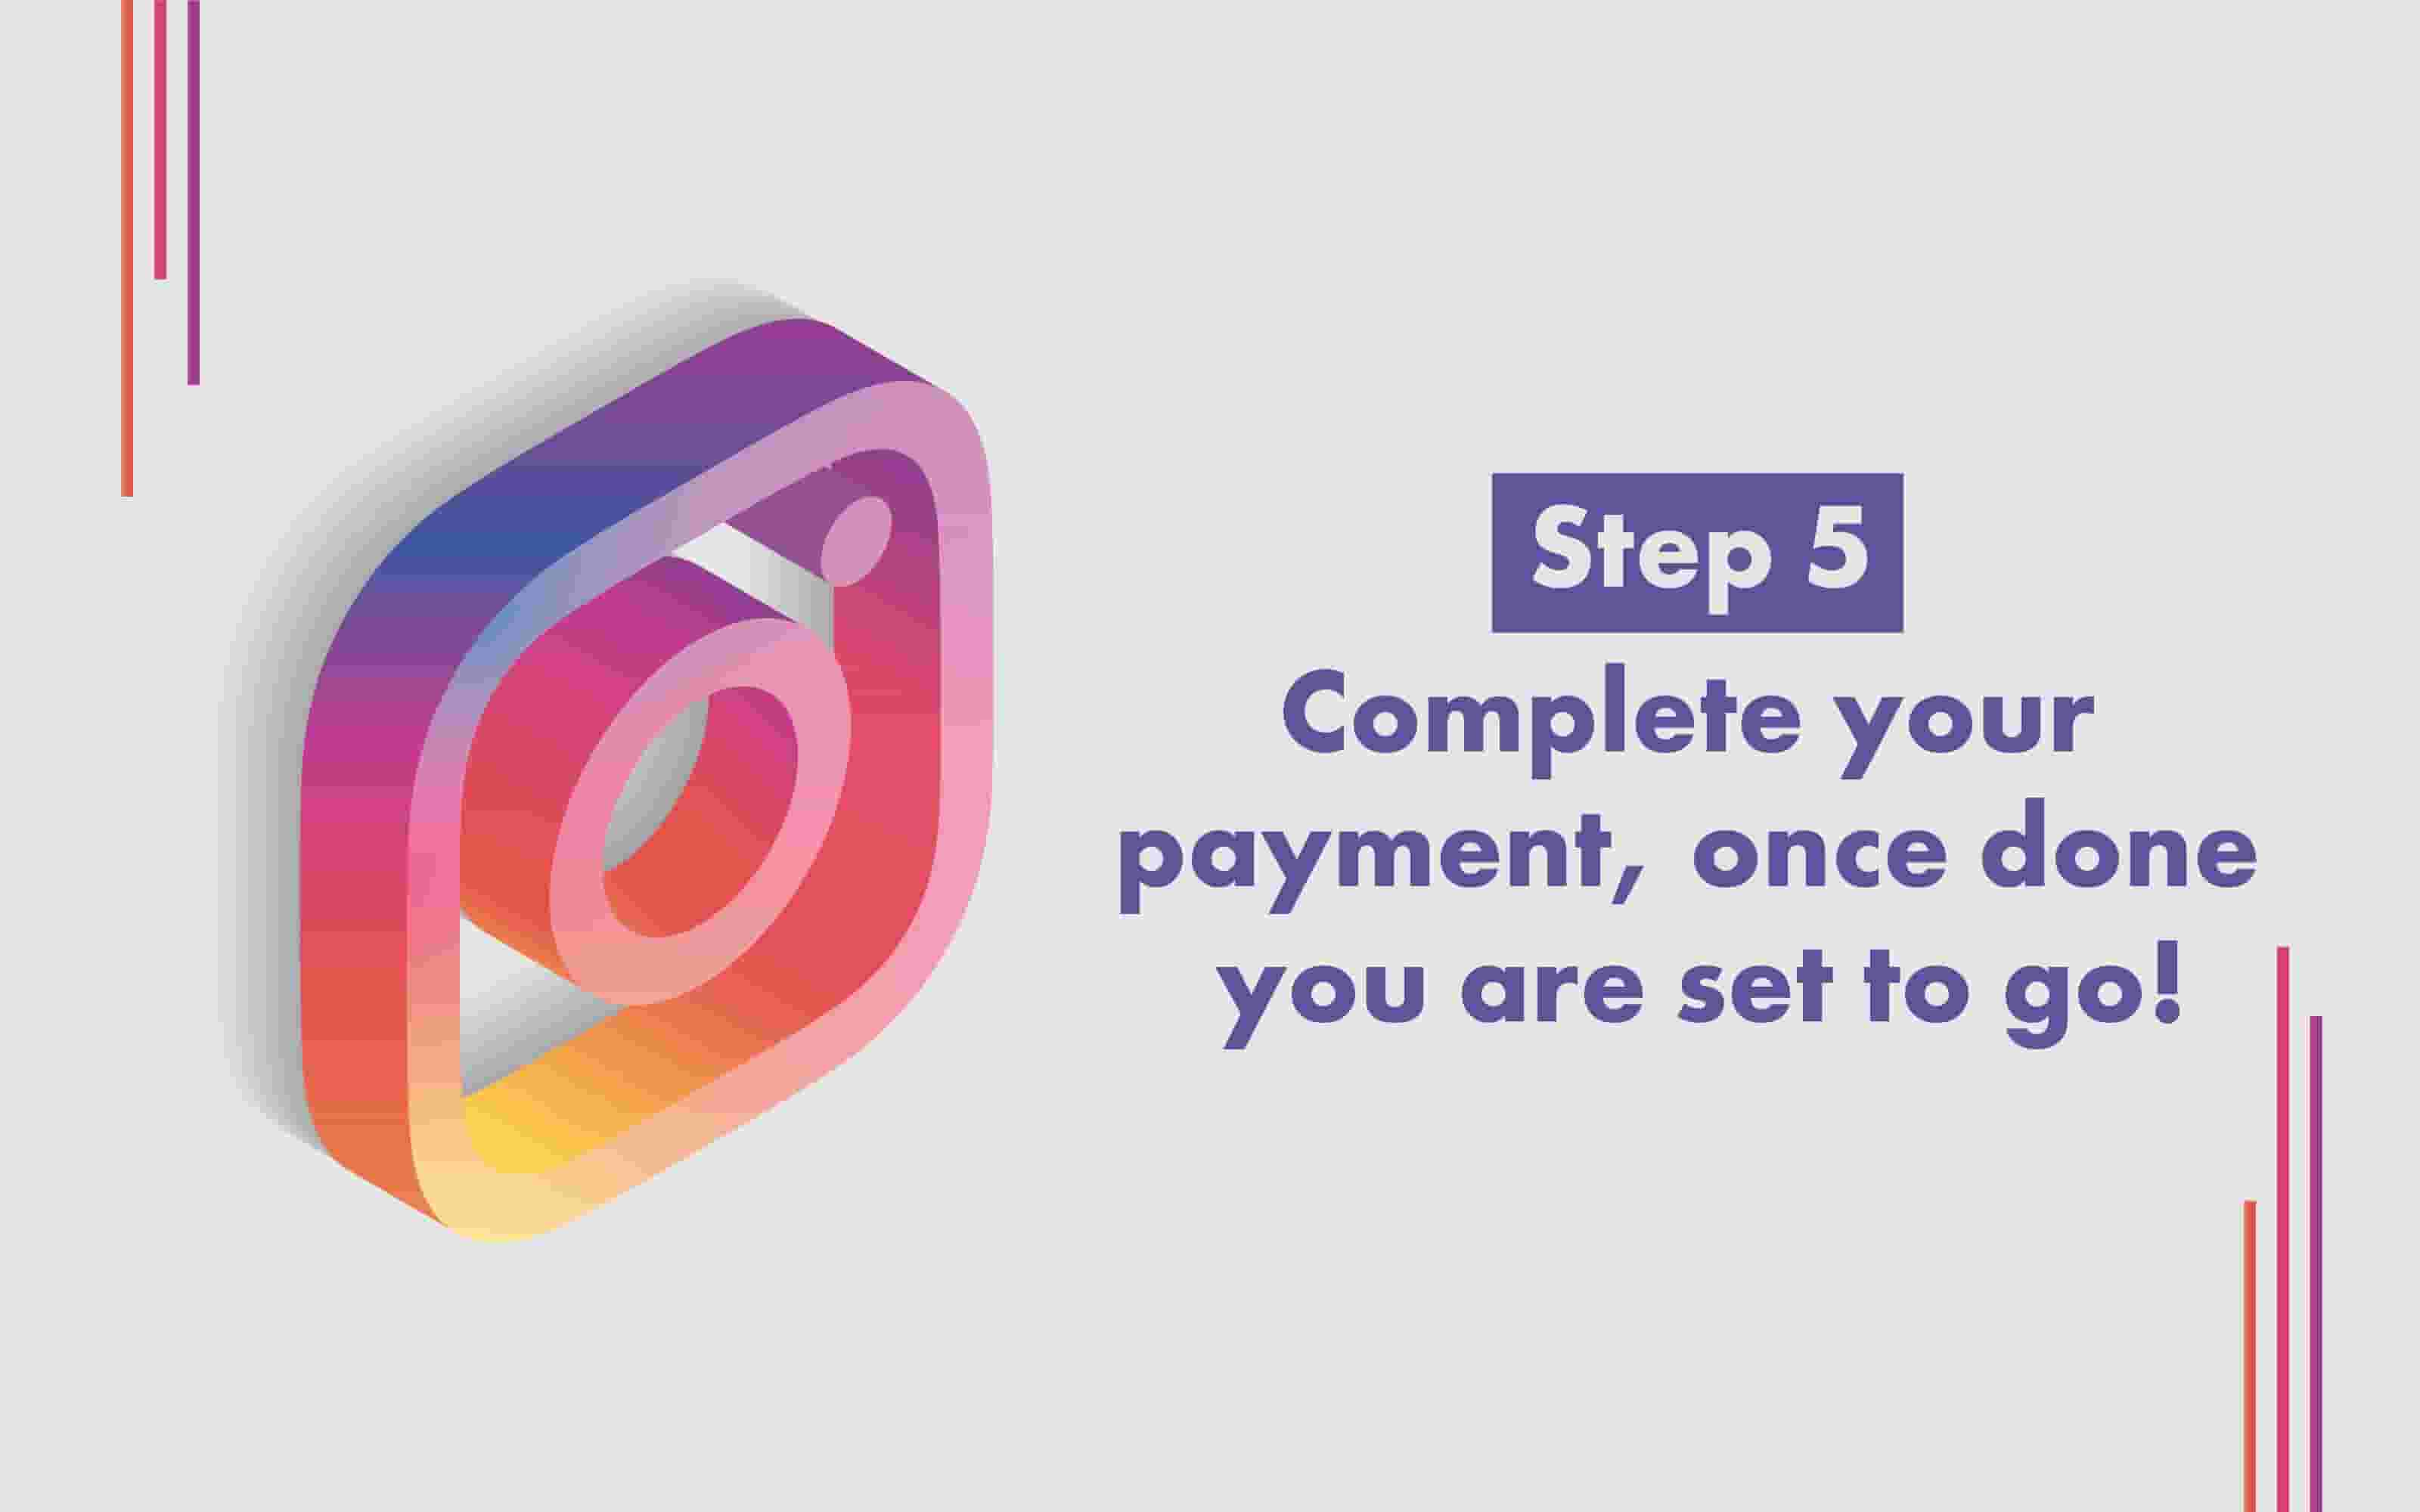 How to Buy Instagram Likes step 5